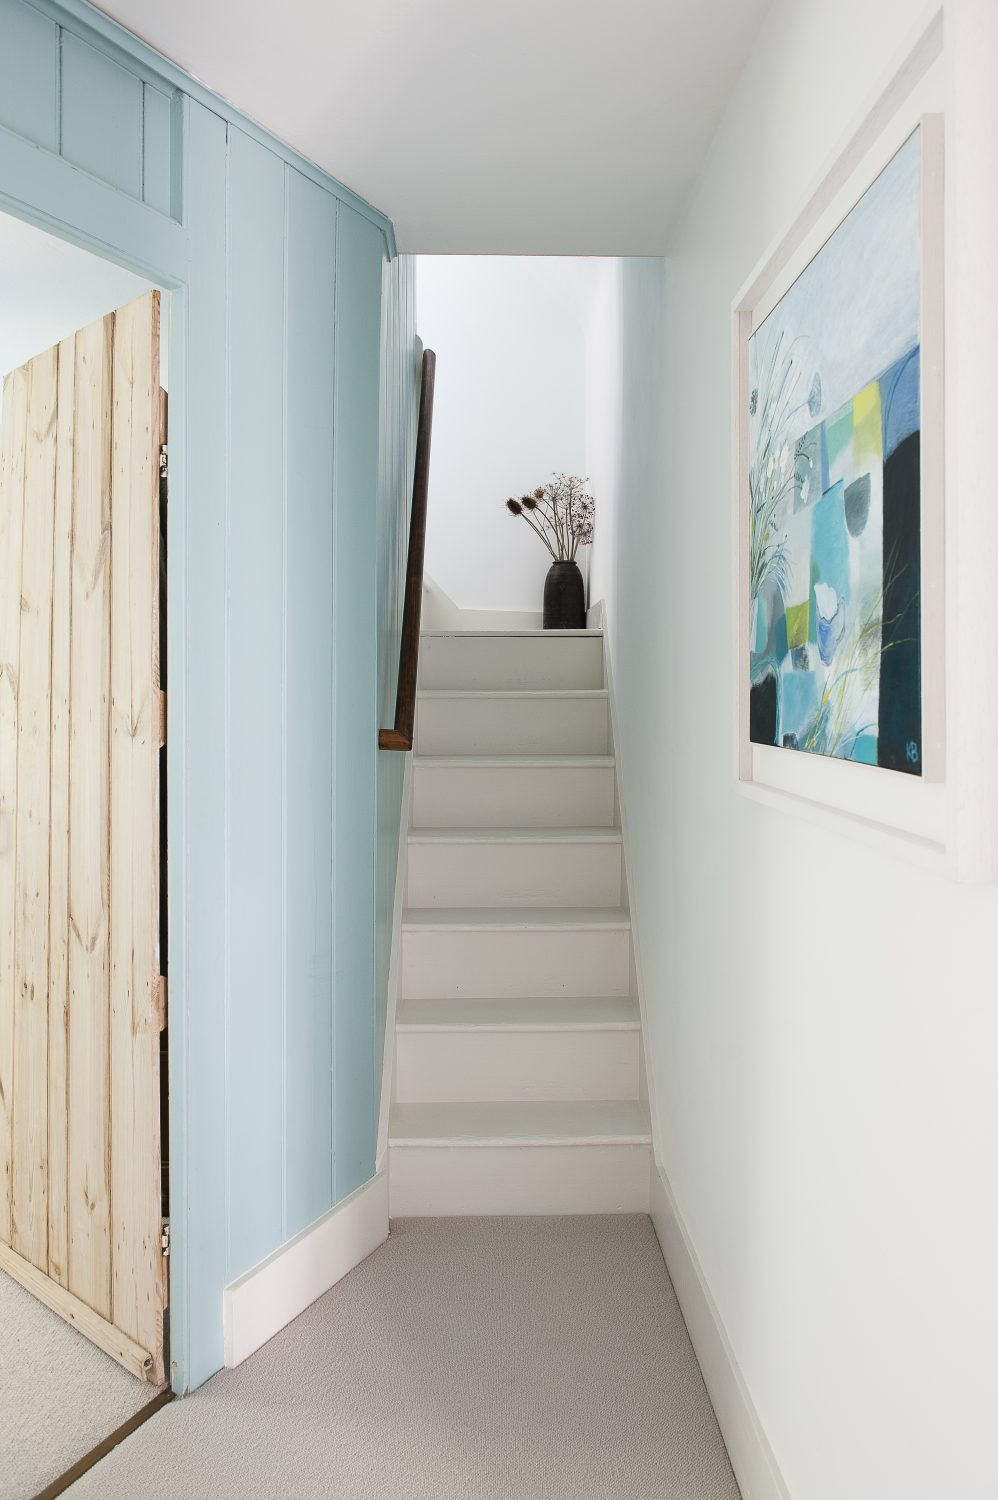 We head upstairs and a pale blue light washes down, bringing an uplifting and serene feeling to the climb, as if we are heading into a coastal sky